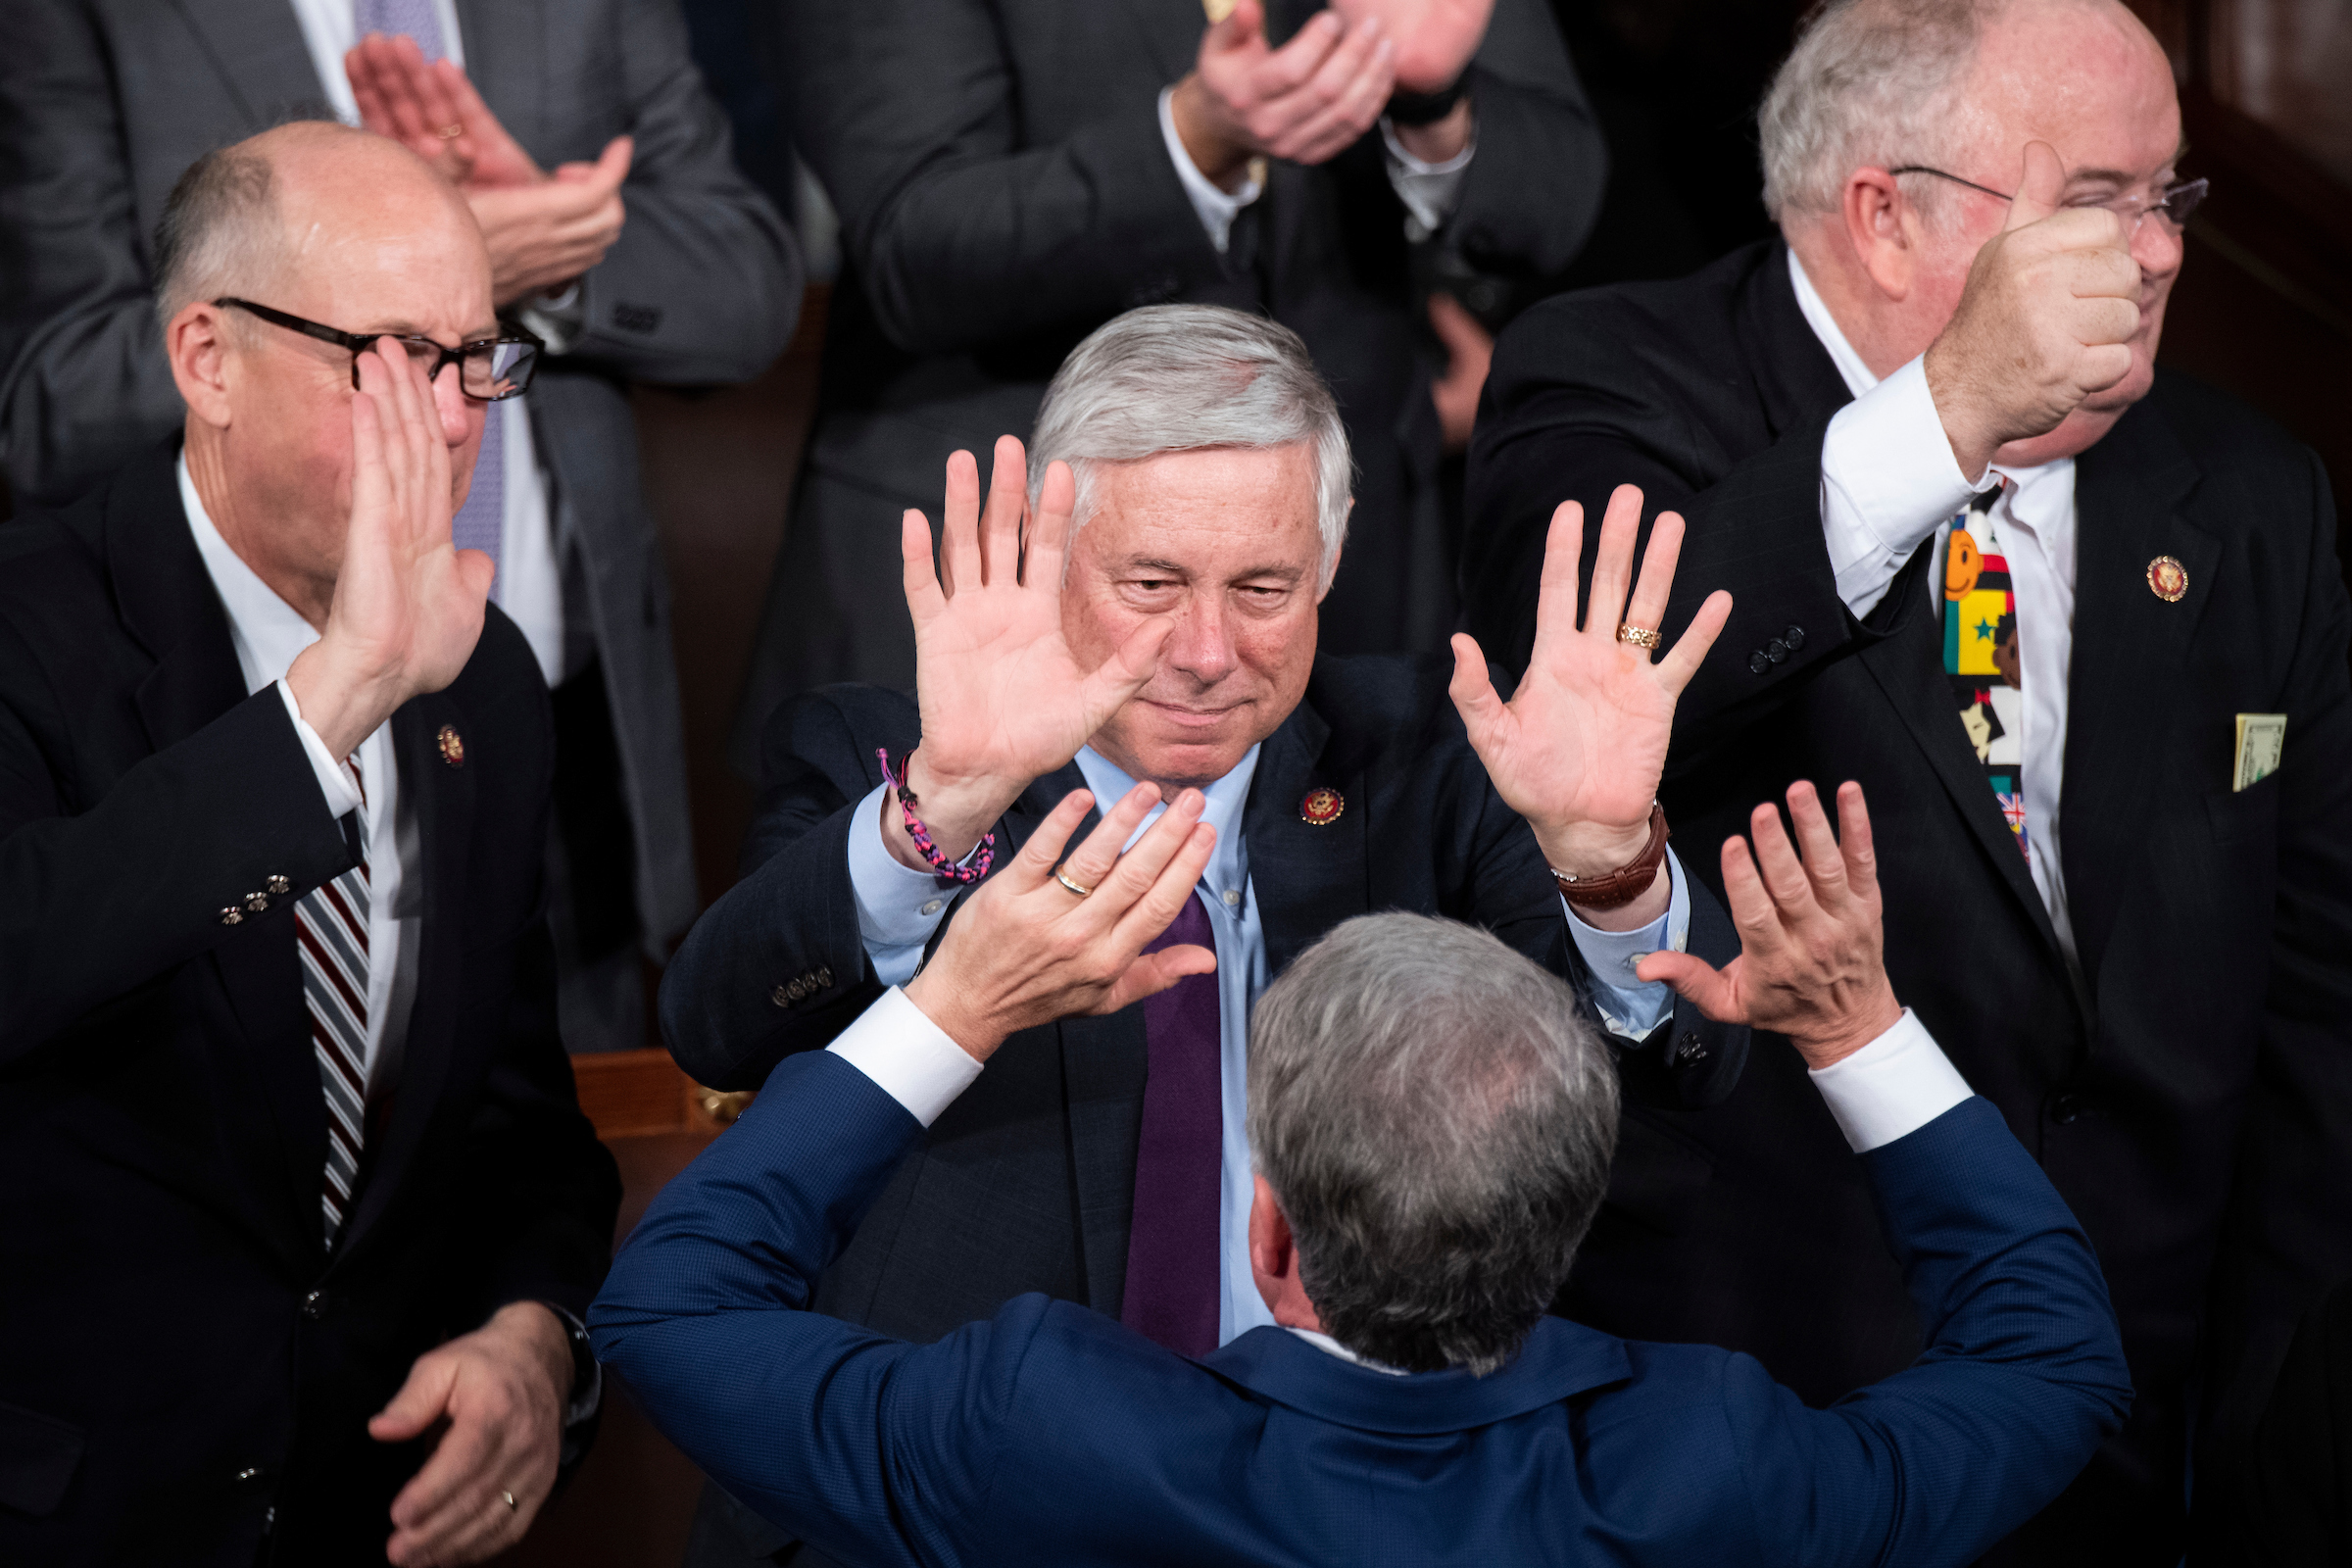 UNITED STATES - FEBRUARY 04: From left, Reps. Greg Walden, R-Ore., Fred Upton, R-Mich., Rep. Michael McCaul, R-Texas, high five during President Donald Trump's State of the Union address in the House Chamber on Tuesday, February 4, 2020. (Photo By Tom Williams/CQ Roll Call)